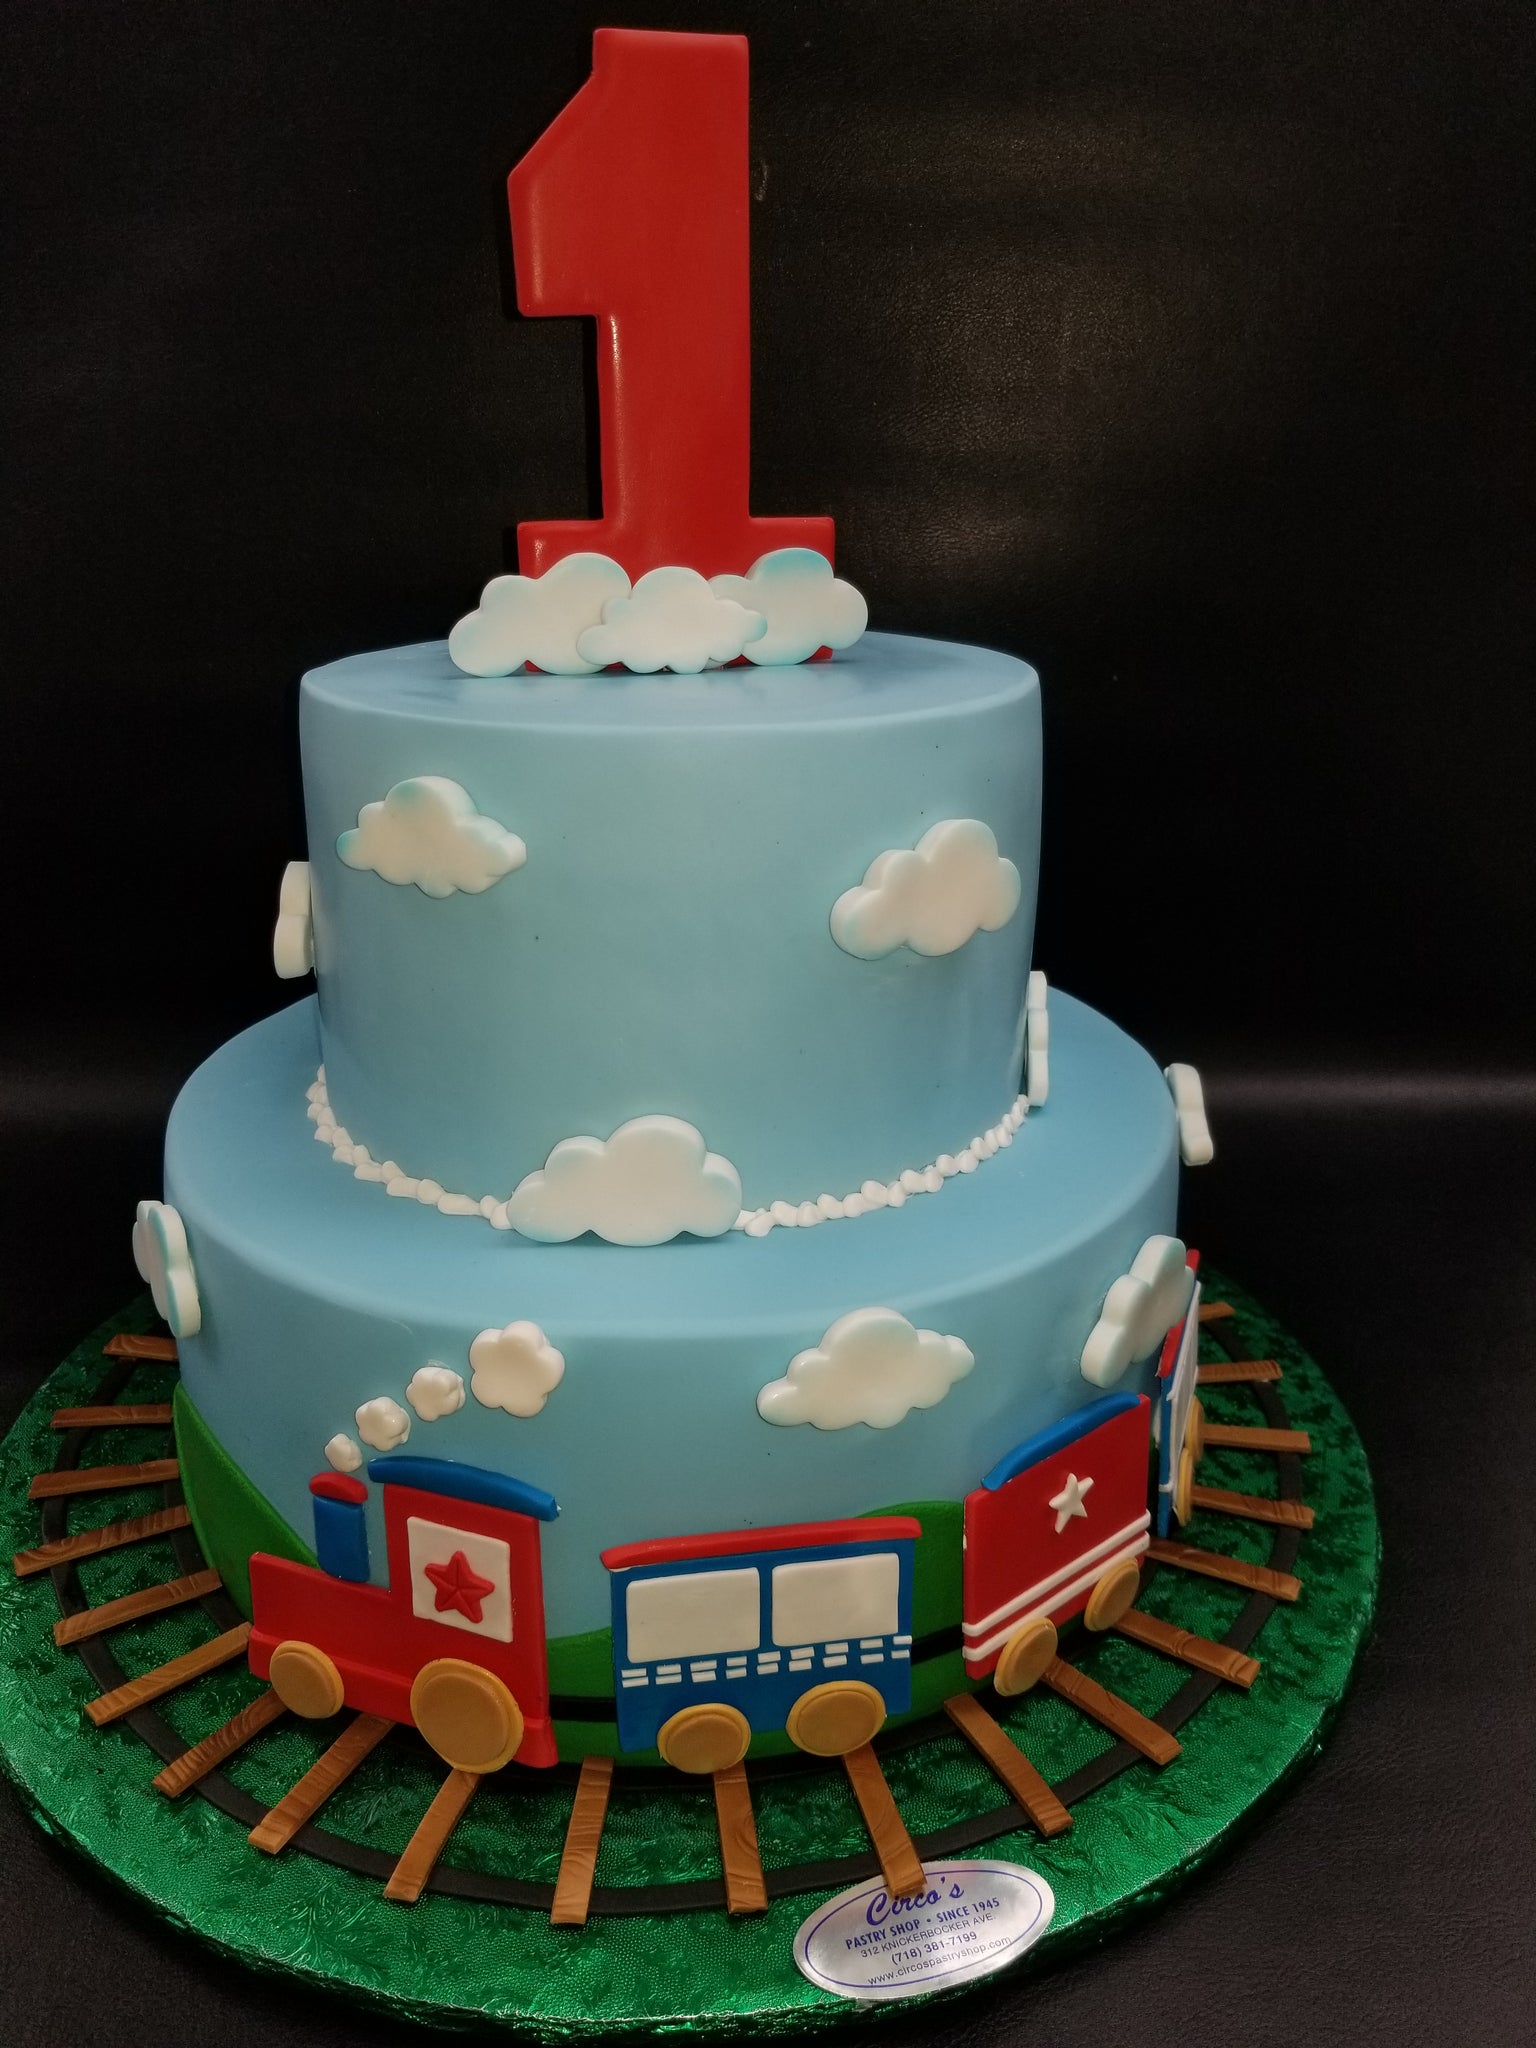 Brilliant 1St Birthday Train Cake B0837 Circos Pastry Shop Funny Birthday Cards Online Inifodamsfinfo